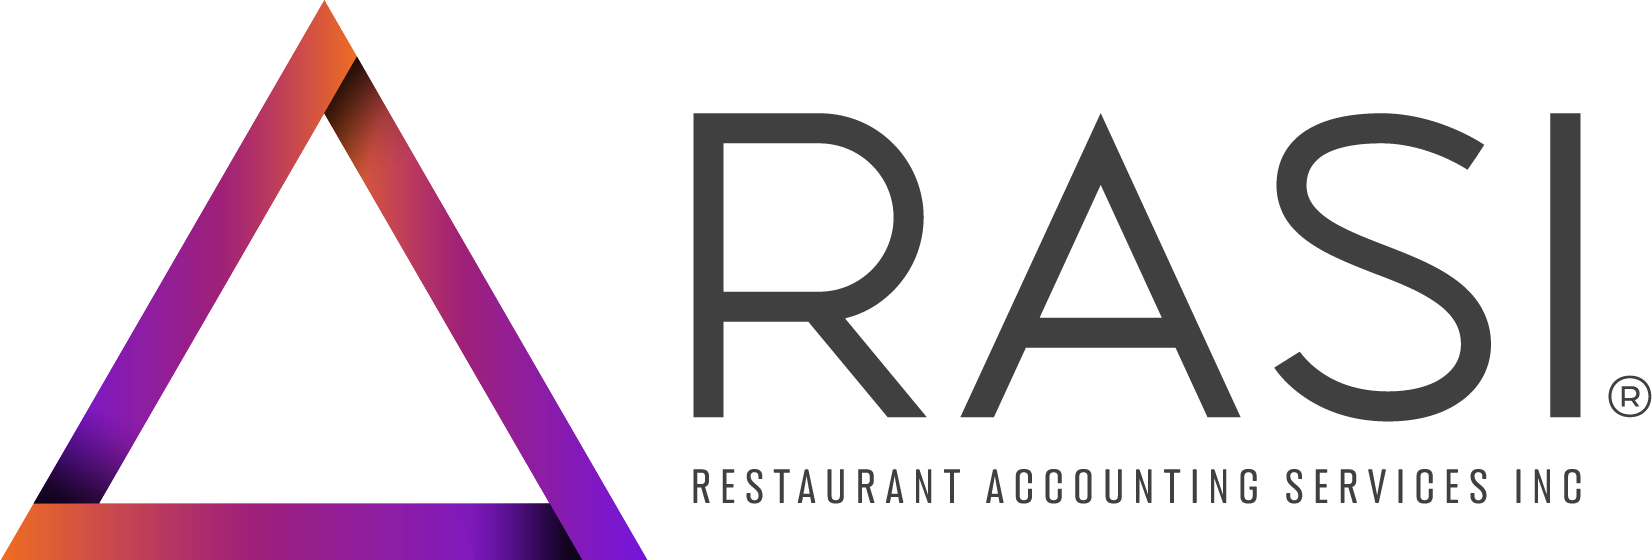 Restaurant Accounting Services Inc